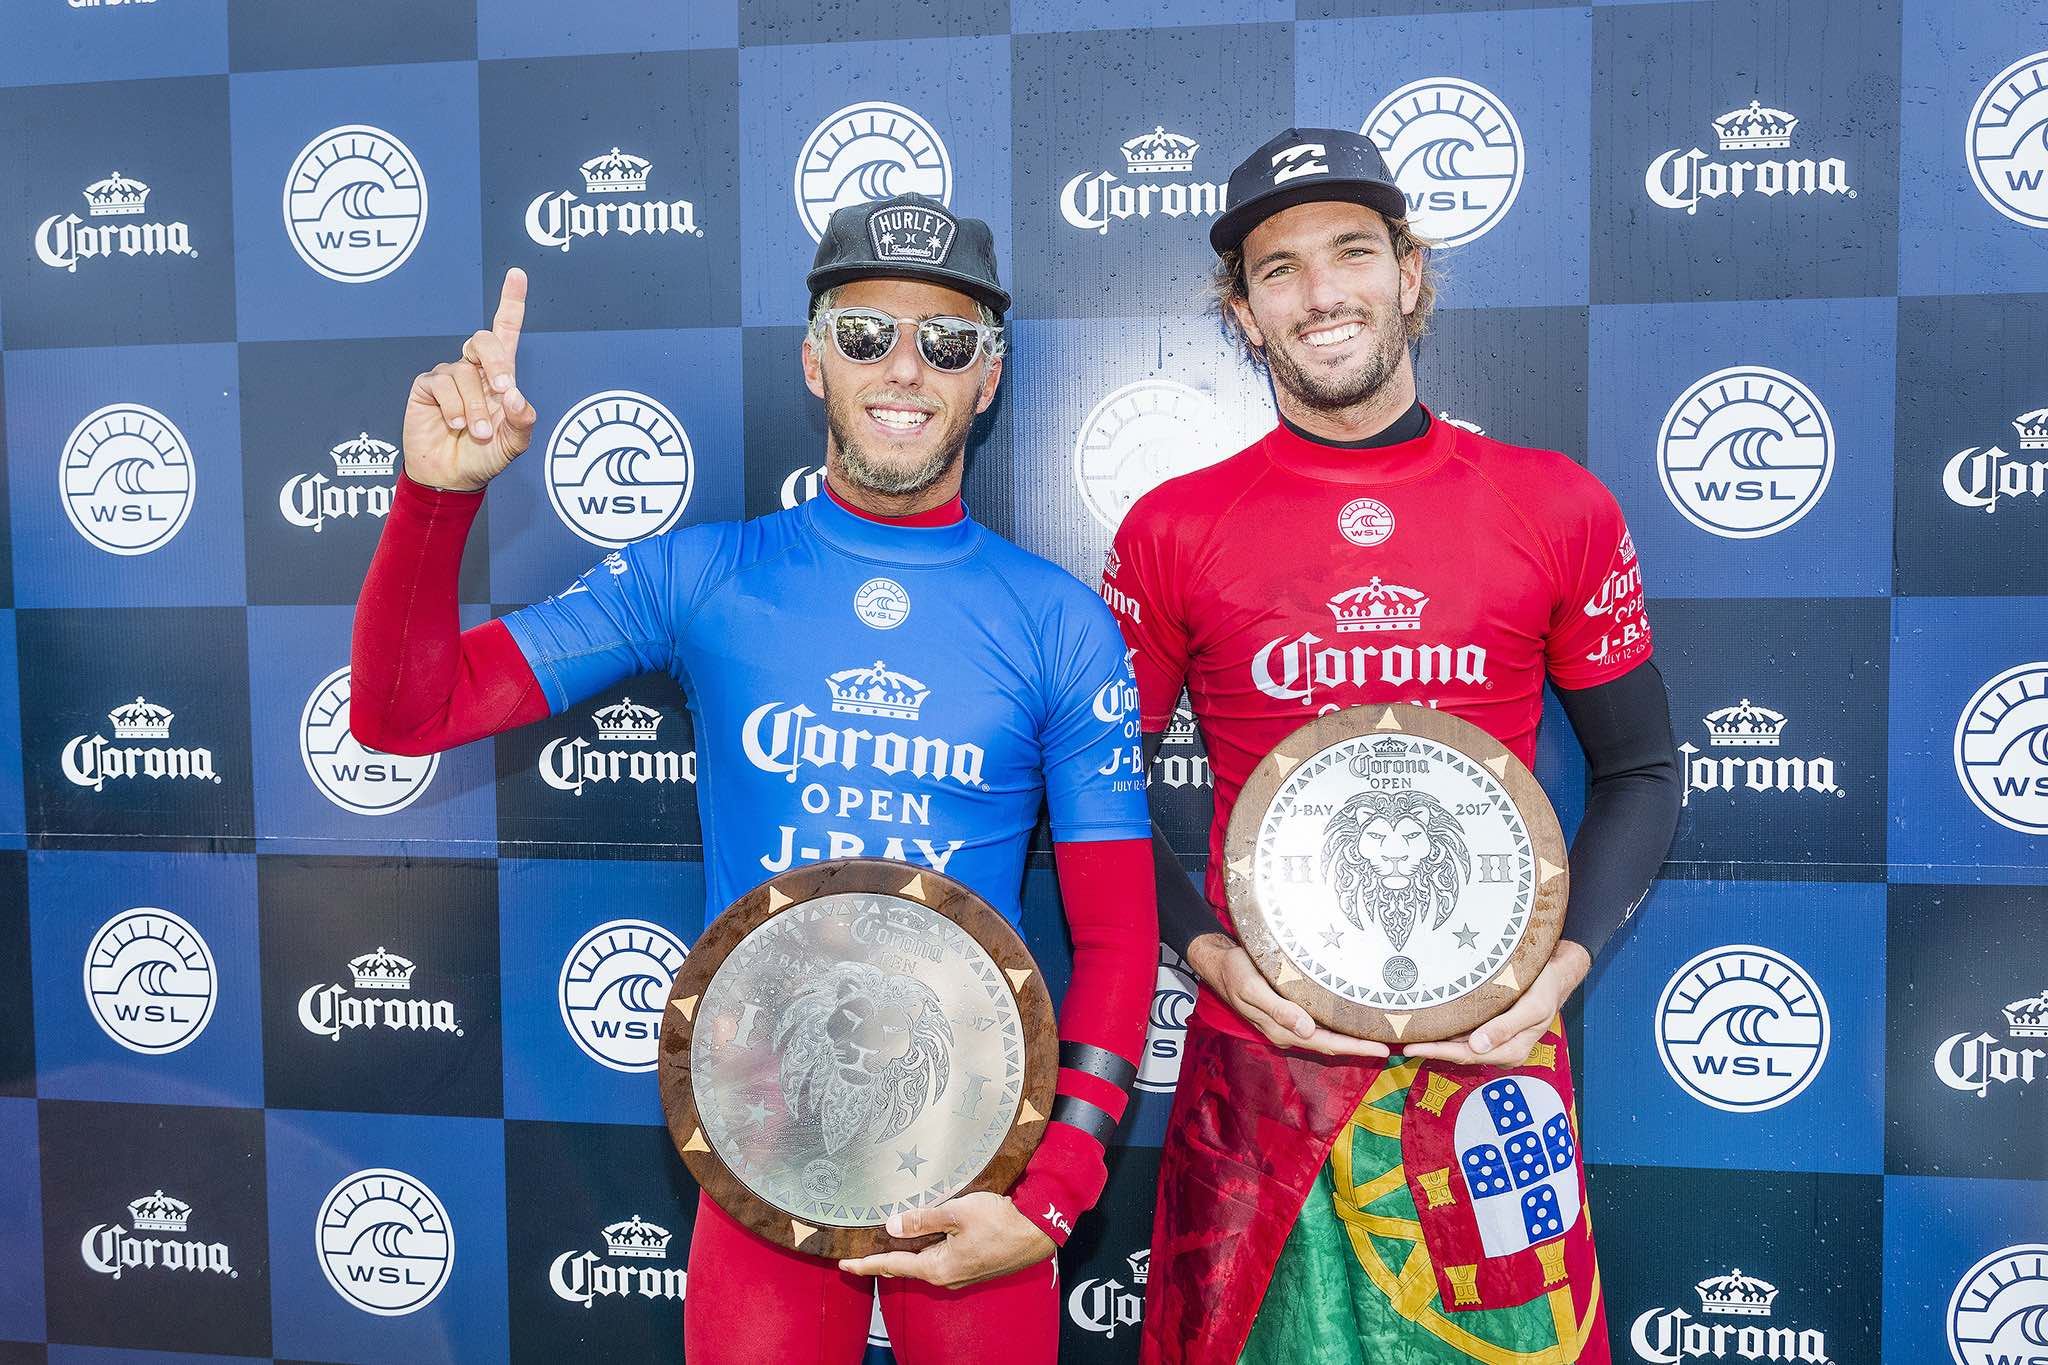 Corona Open J-Bay finals podium